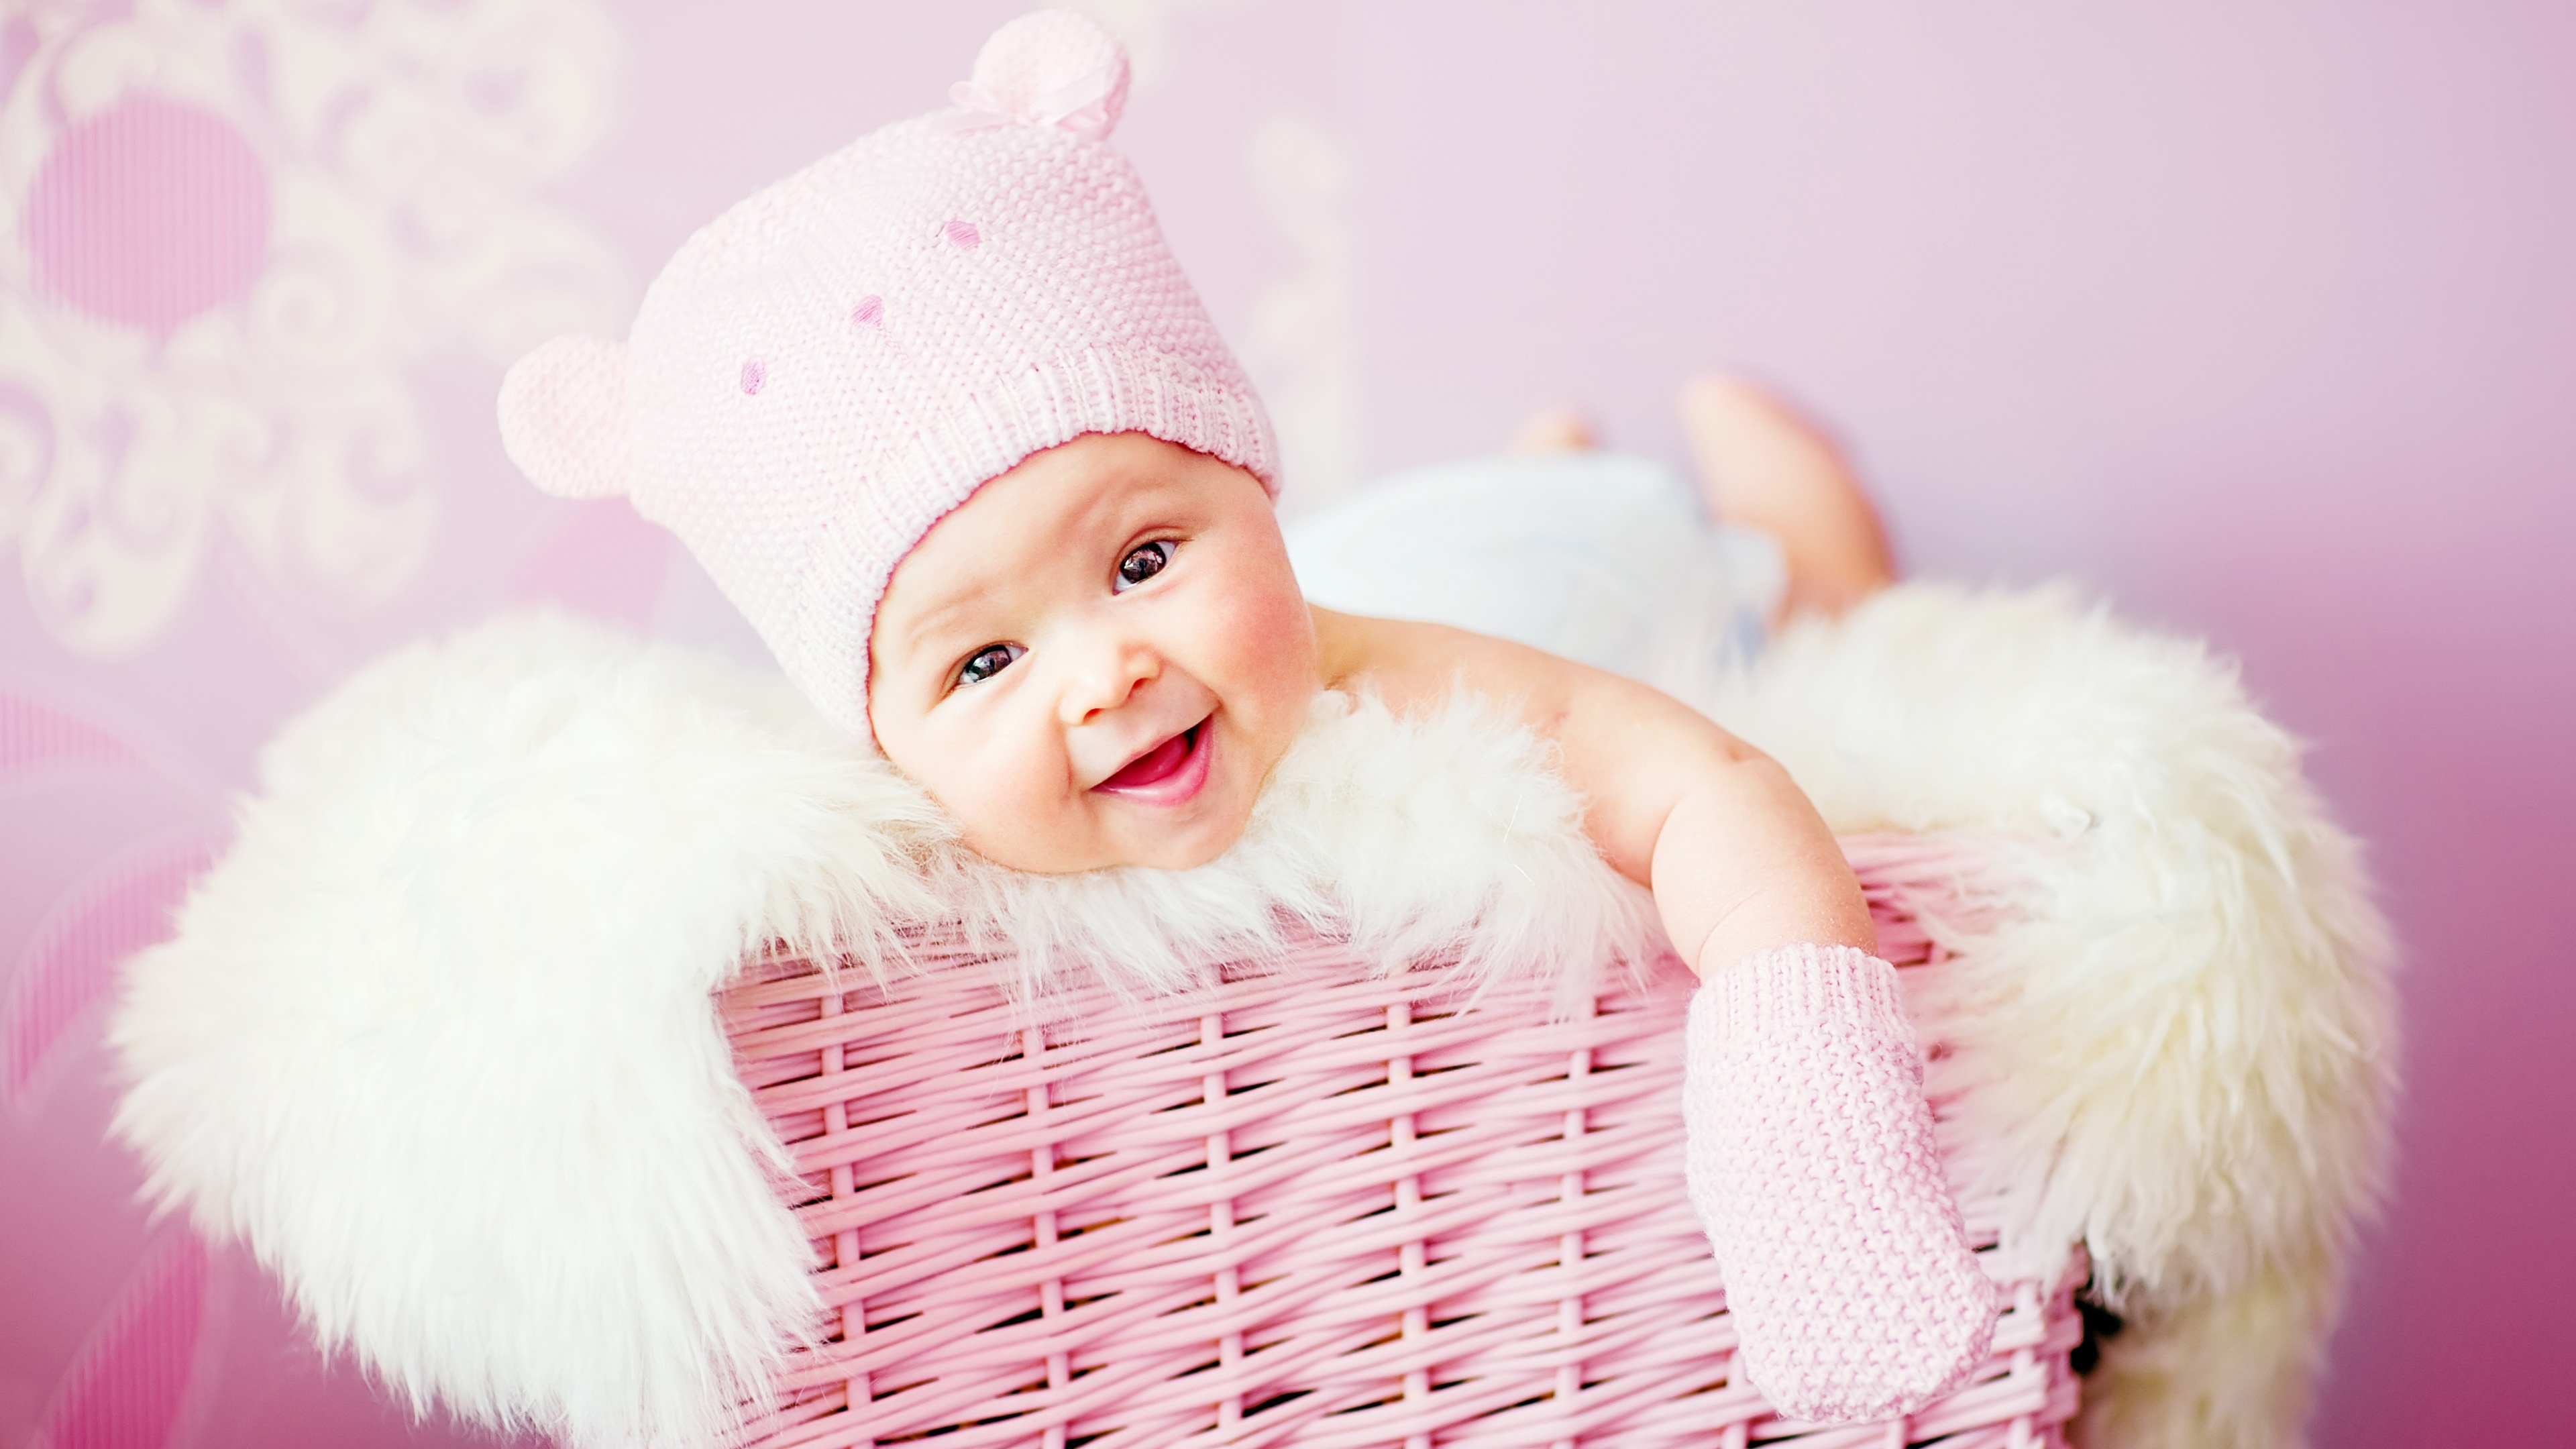 cute laughing baby wallpapers in jpg format for free download